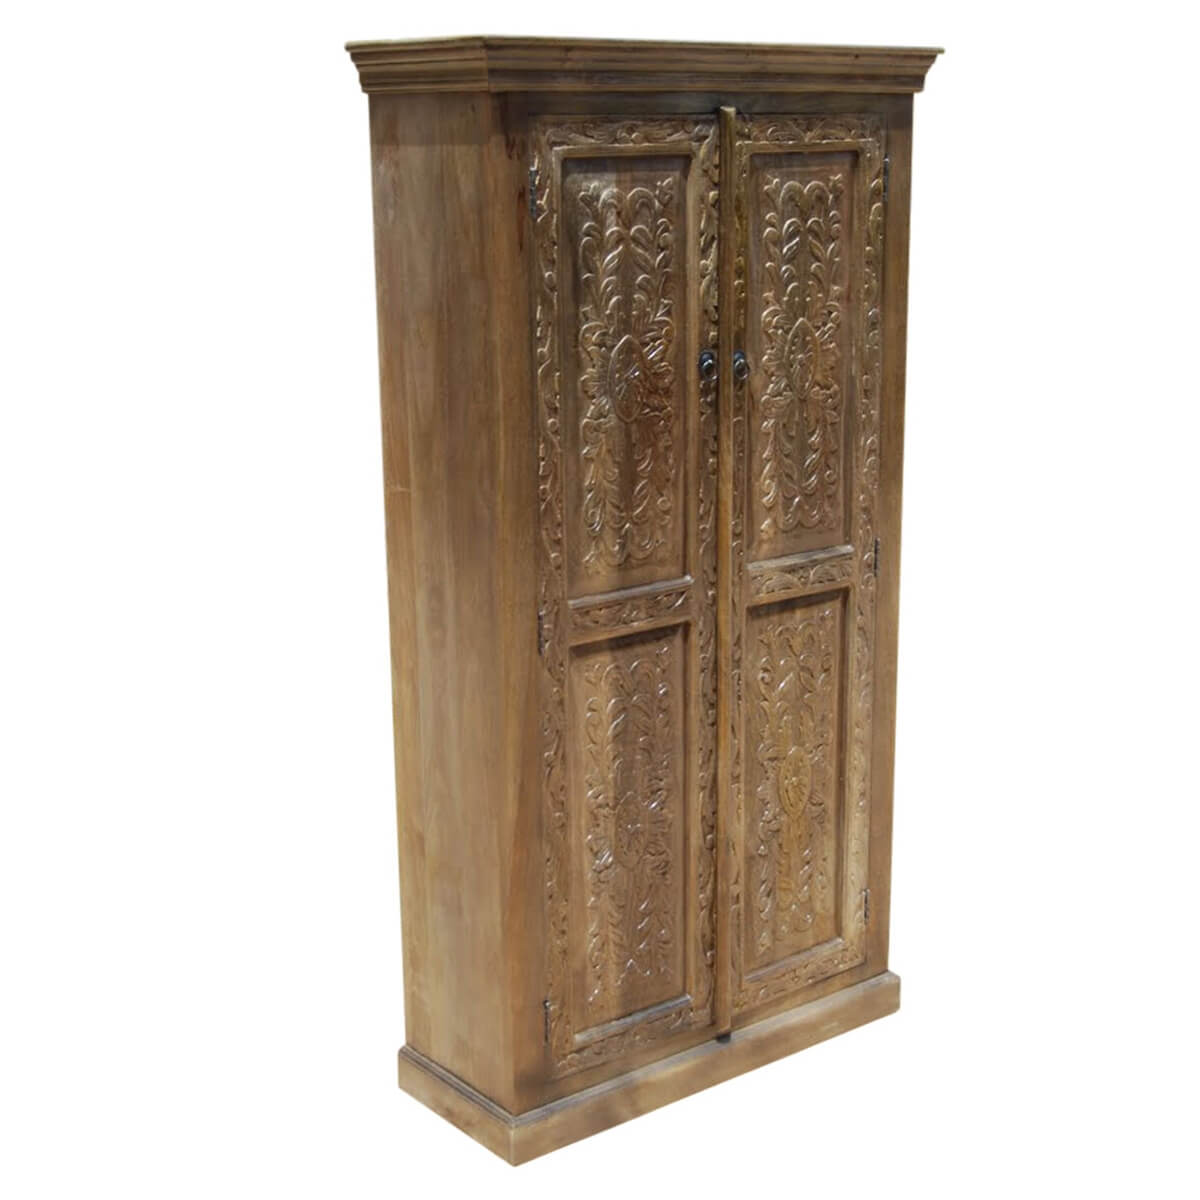 intaglio hand carved doors solid wood storage cabinet. Black Bedroom Furniture Sets. Home Design Ideas